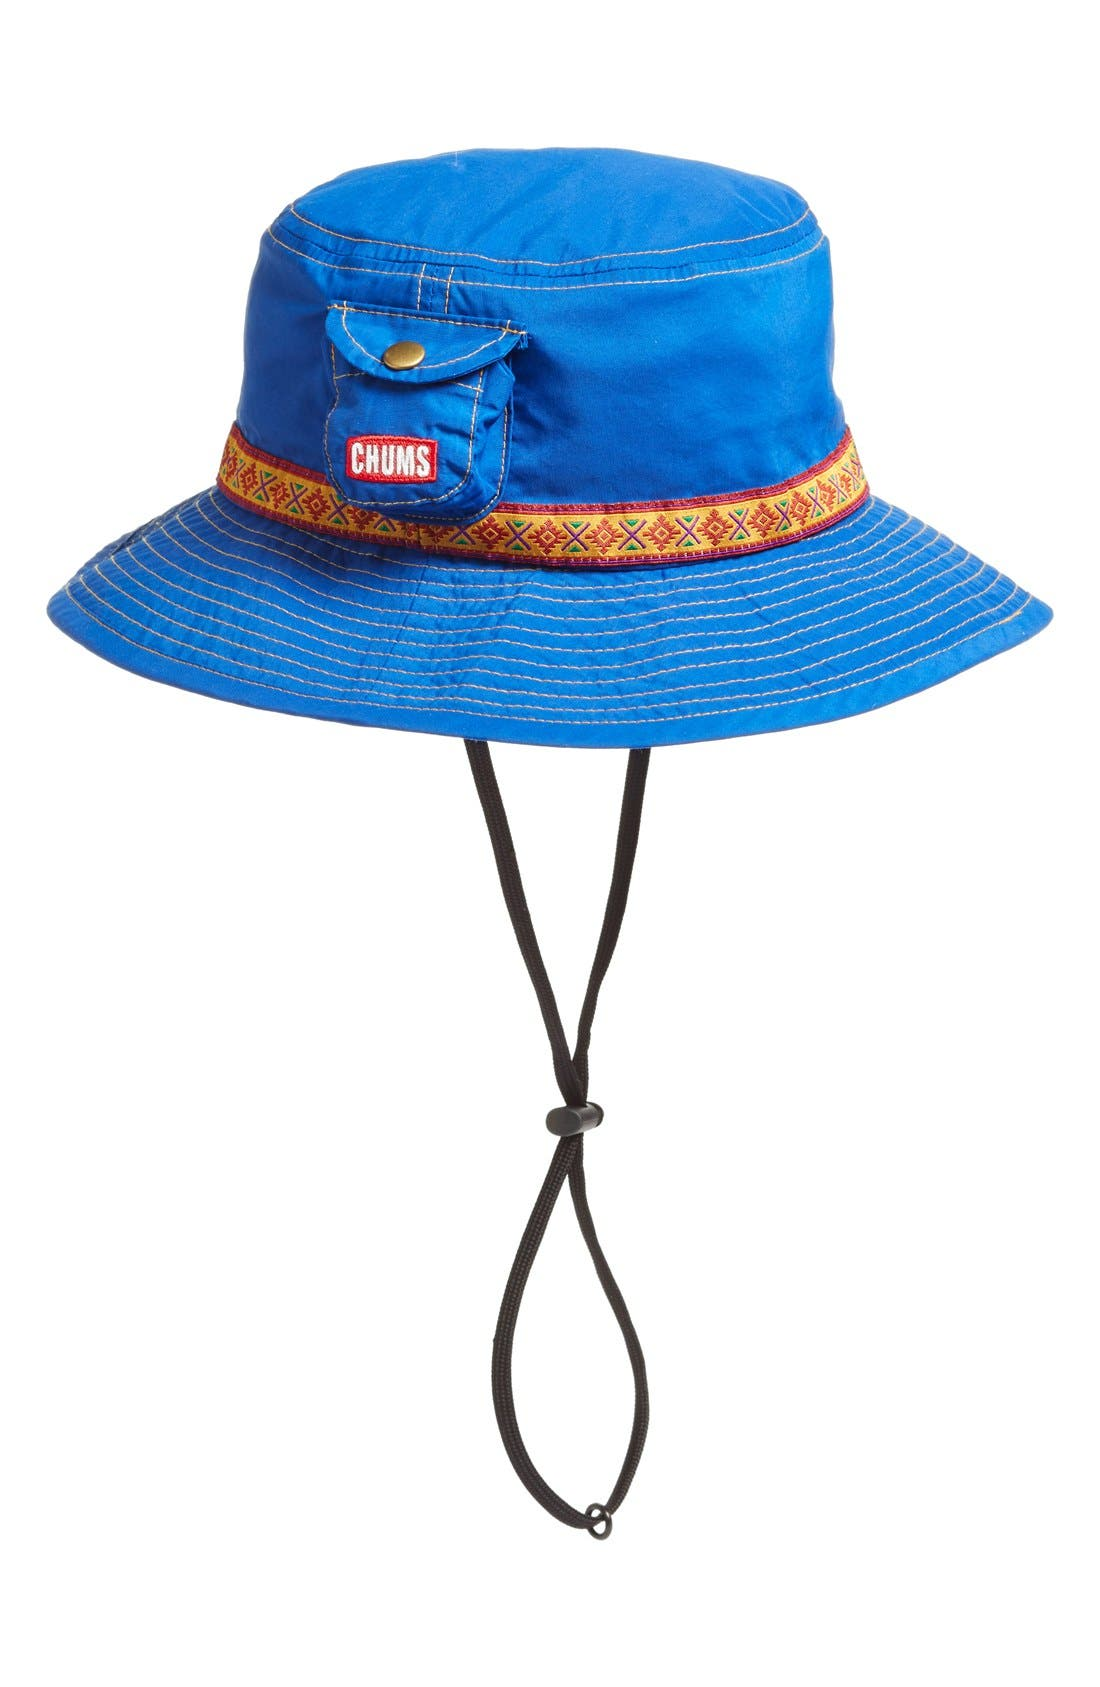 Main Image - Chums 'Fes' Hat